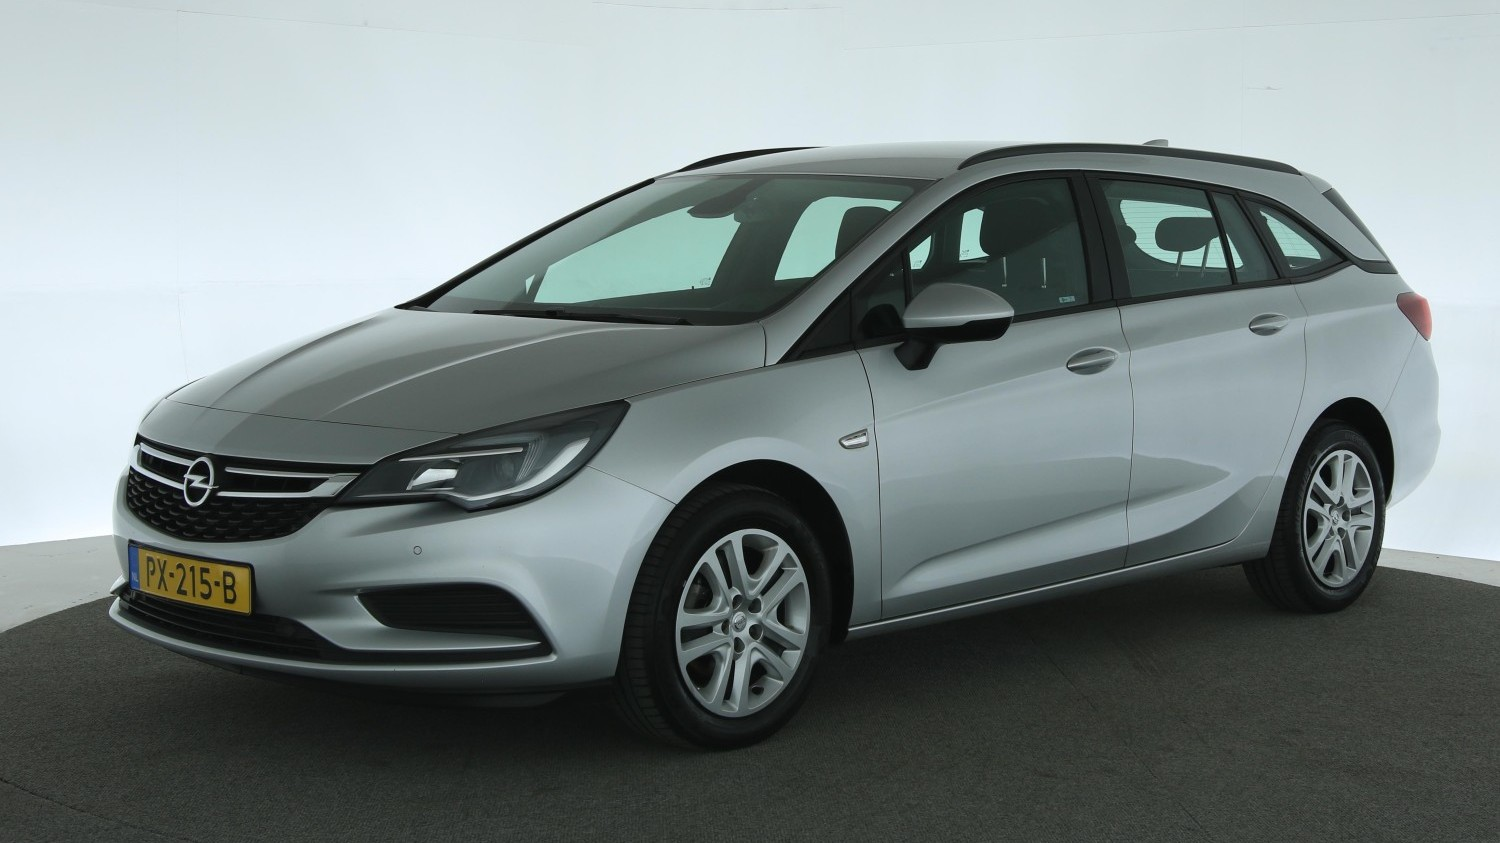 Opel Astra Station 2017 PX-215-B 1